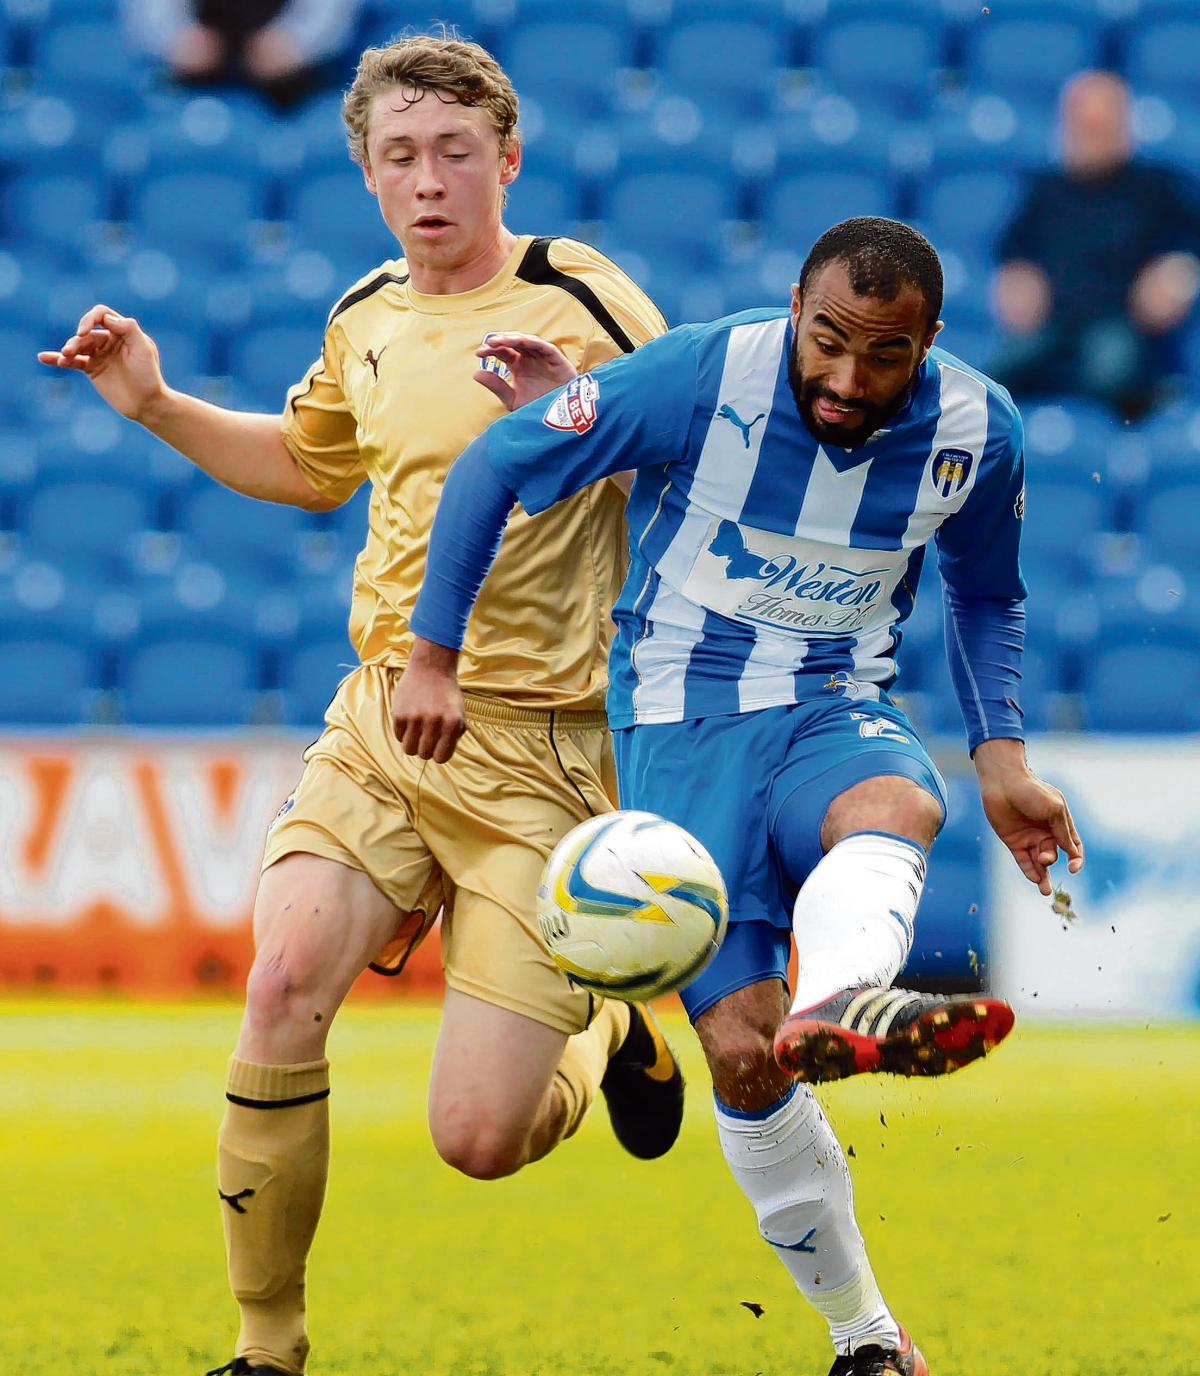 Middle man - Dominic Vose is targeting a regular spot at the heart of Colchester United's attack.